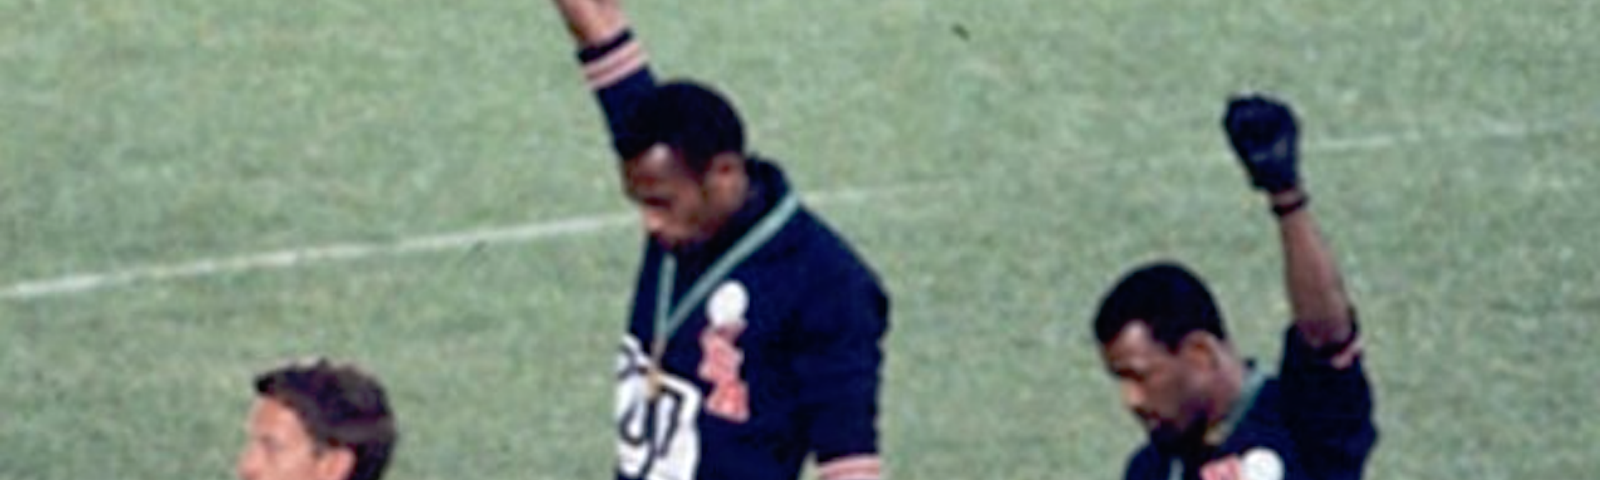 Tommie Smith and John Carlos give the Black Power salute in 1968. Peter Norman at left.